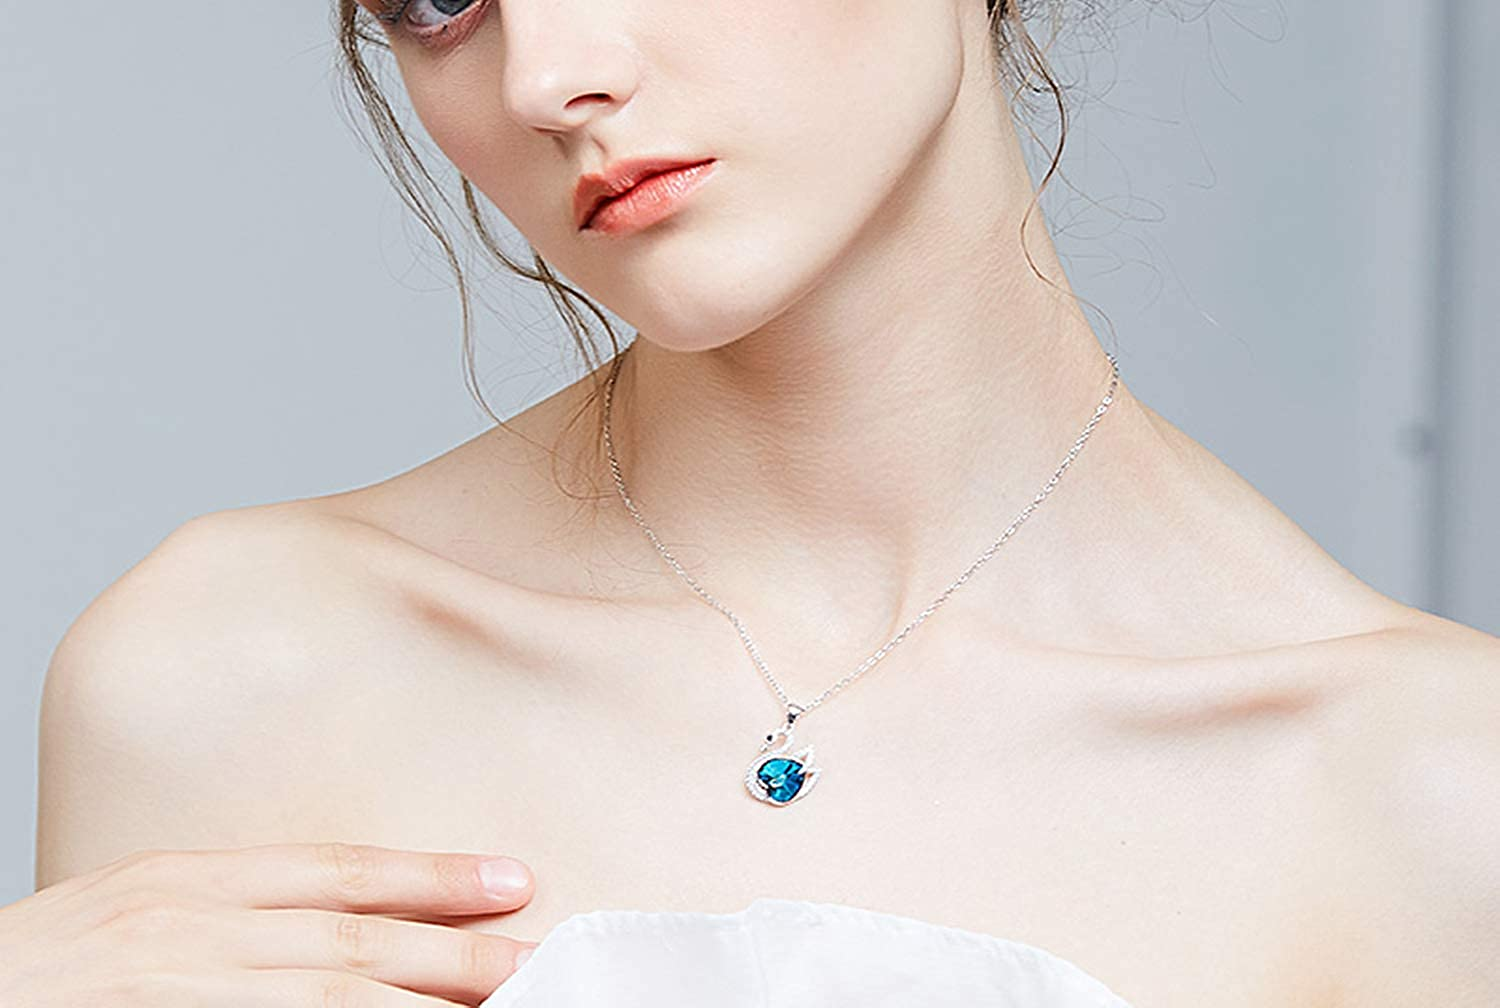 Crystal from Necklace Jewelry Women S925 Sterling Silver swan Necklace Jewelry Fashion Fine Gift Valentines Day,Photo Color